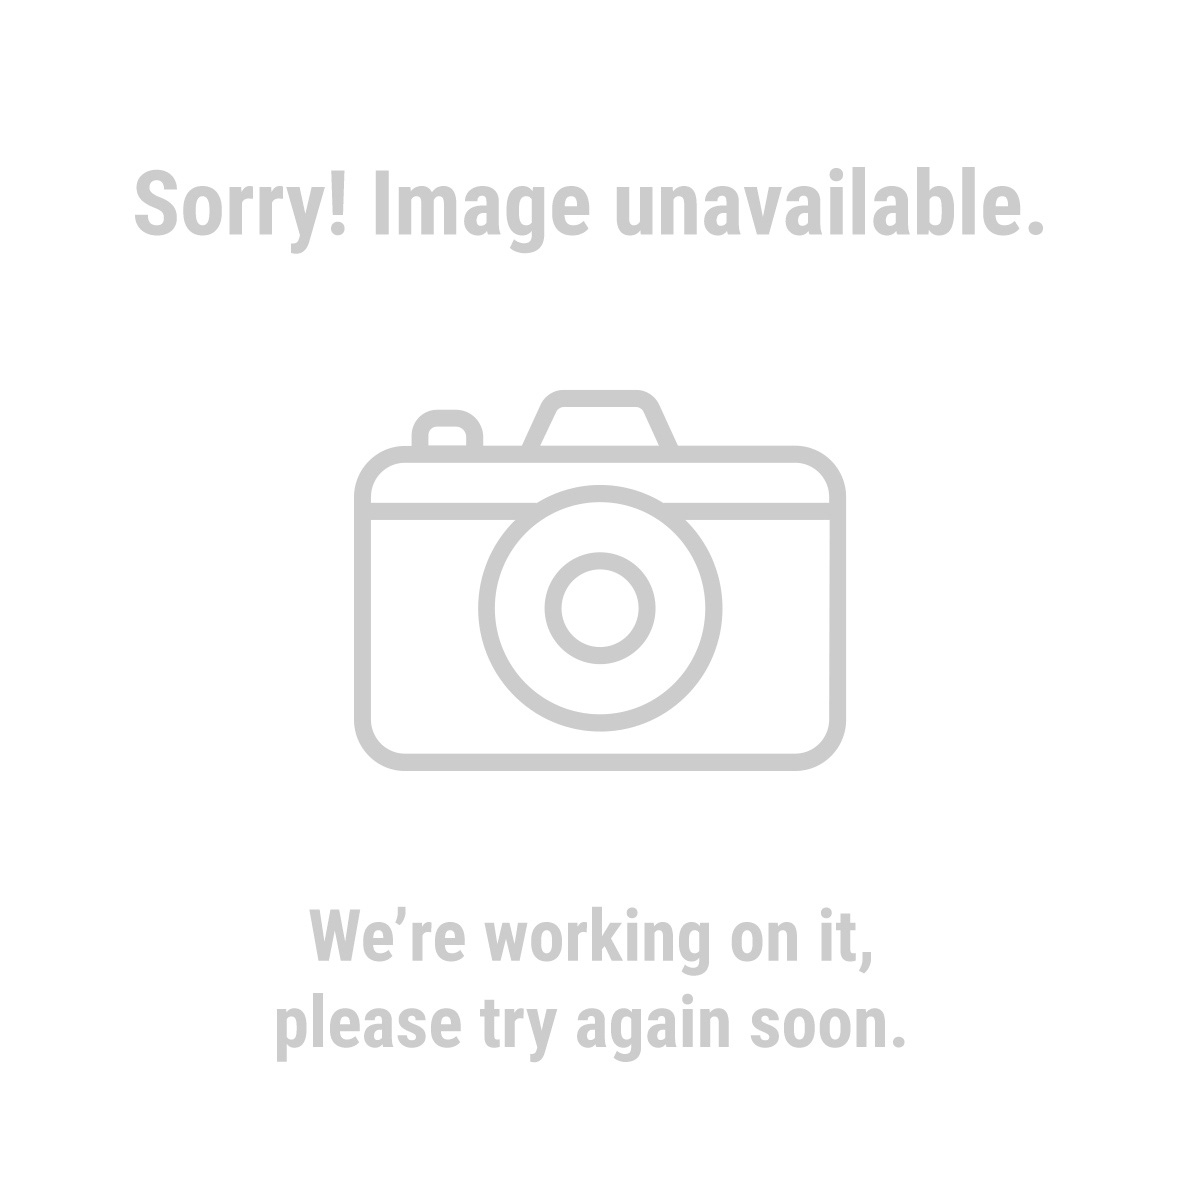 "Haul Master Automotive 94564 1720 Lb. Capacity Super Duty 48"" x  96"" Utility Trailer with 12"" Five Lug Wheels and Tires"